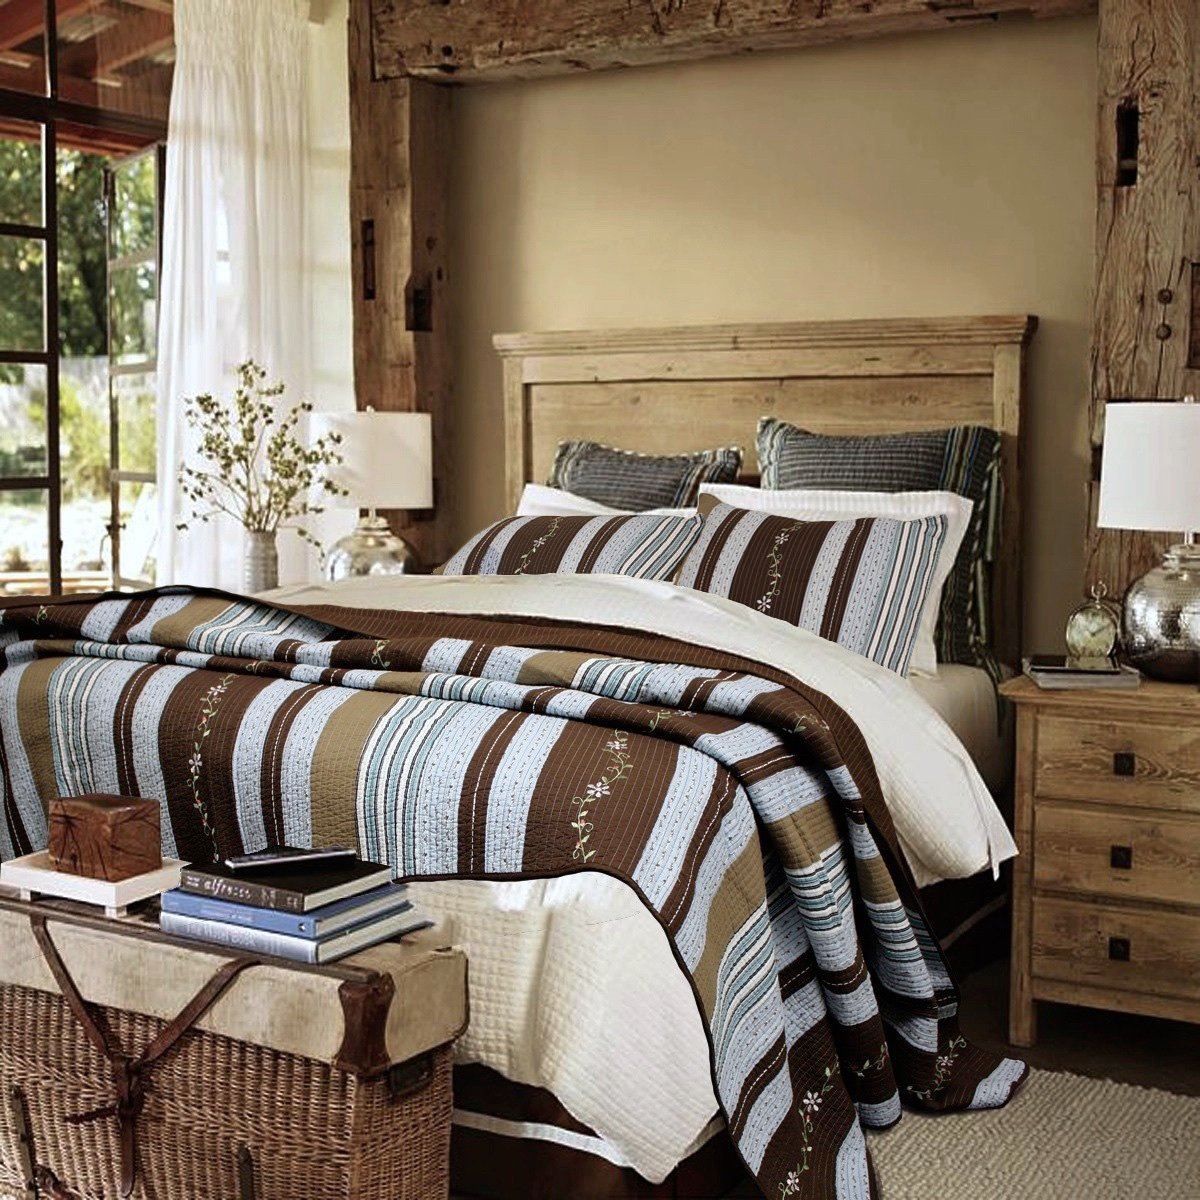 Lake House Blue Rustic Resort Walnut Brown Cabin Woods Stripes with Floral Vine Accents Quilt Set - Queen